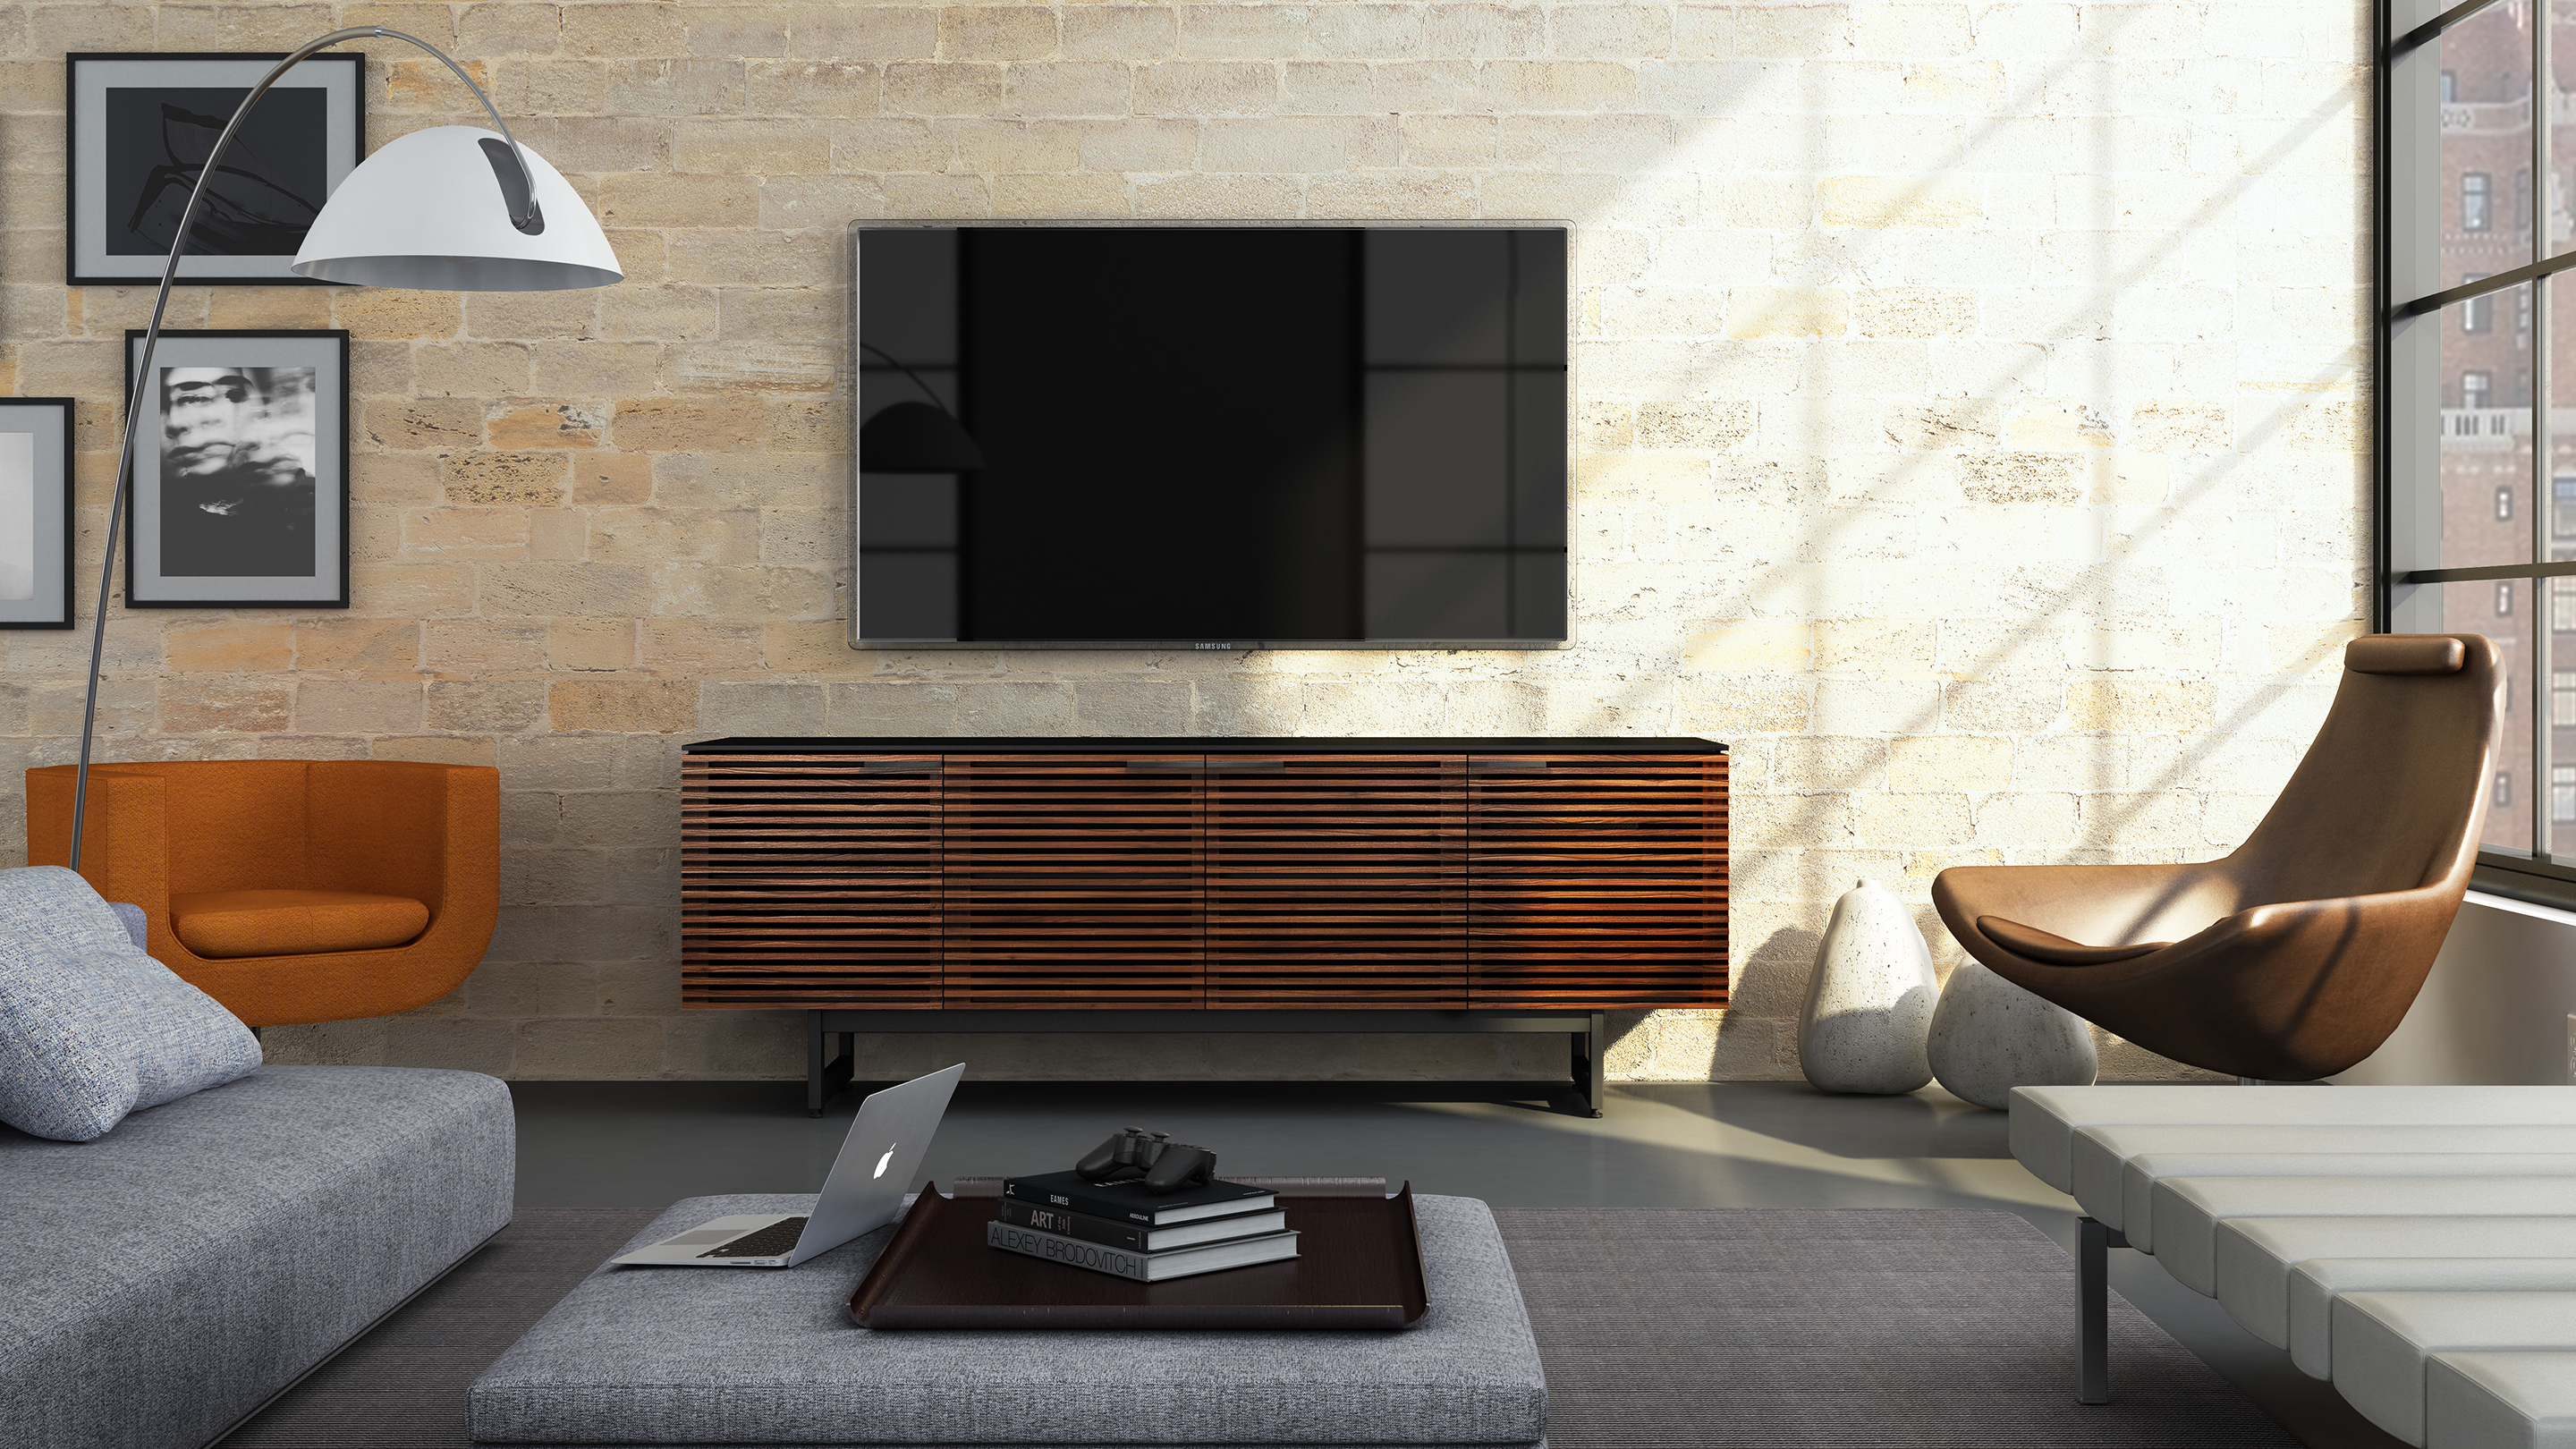 console bdi tv fresh sigma furniture out modern lovely living cupboard speakers home of infinity usa new other check room irs